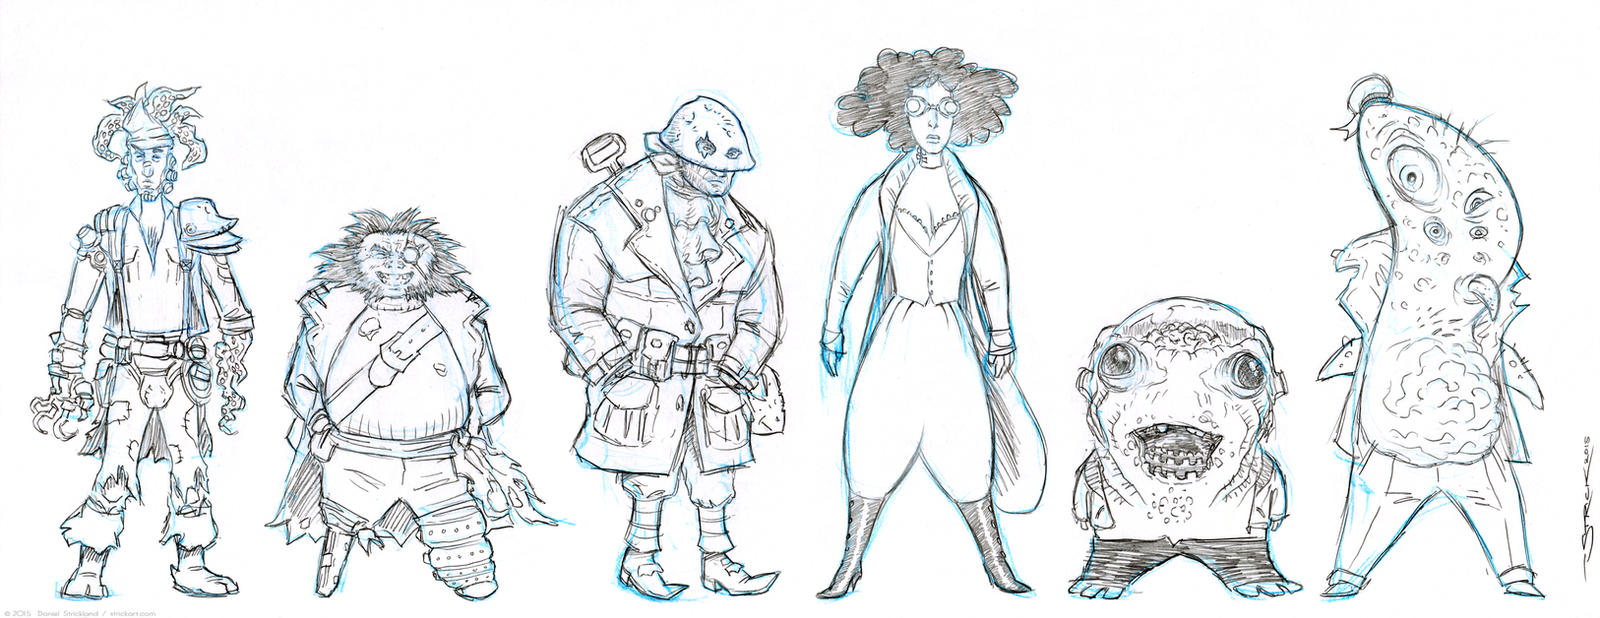 Nobbins Characters sketch 3 by strickart